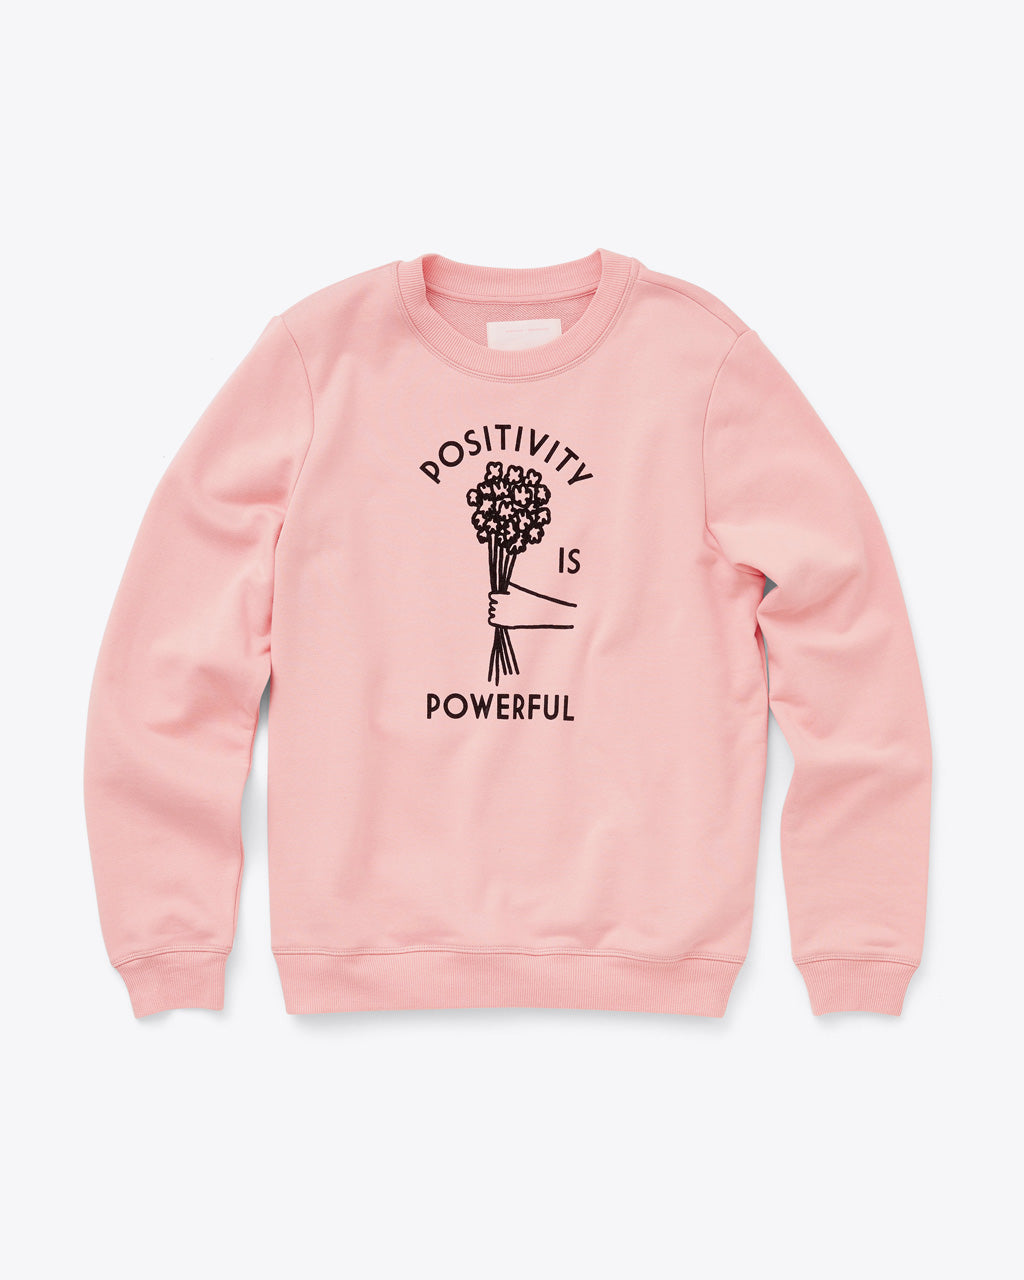 light pink sweatshirt with the words positivity is powerful and a daisy bouquet in the middle